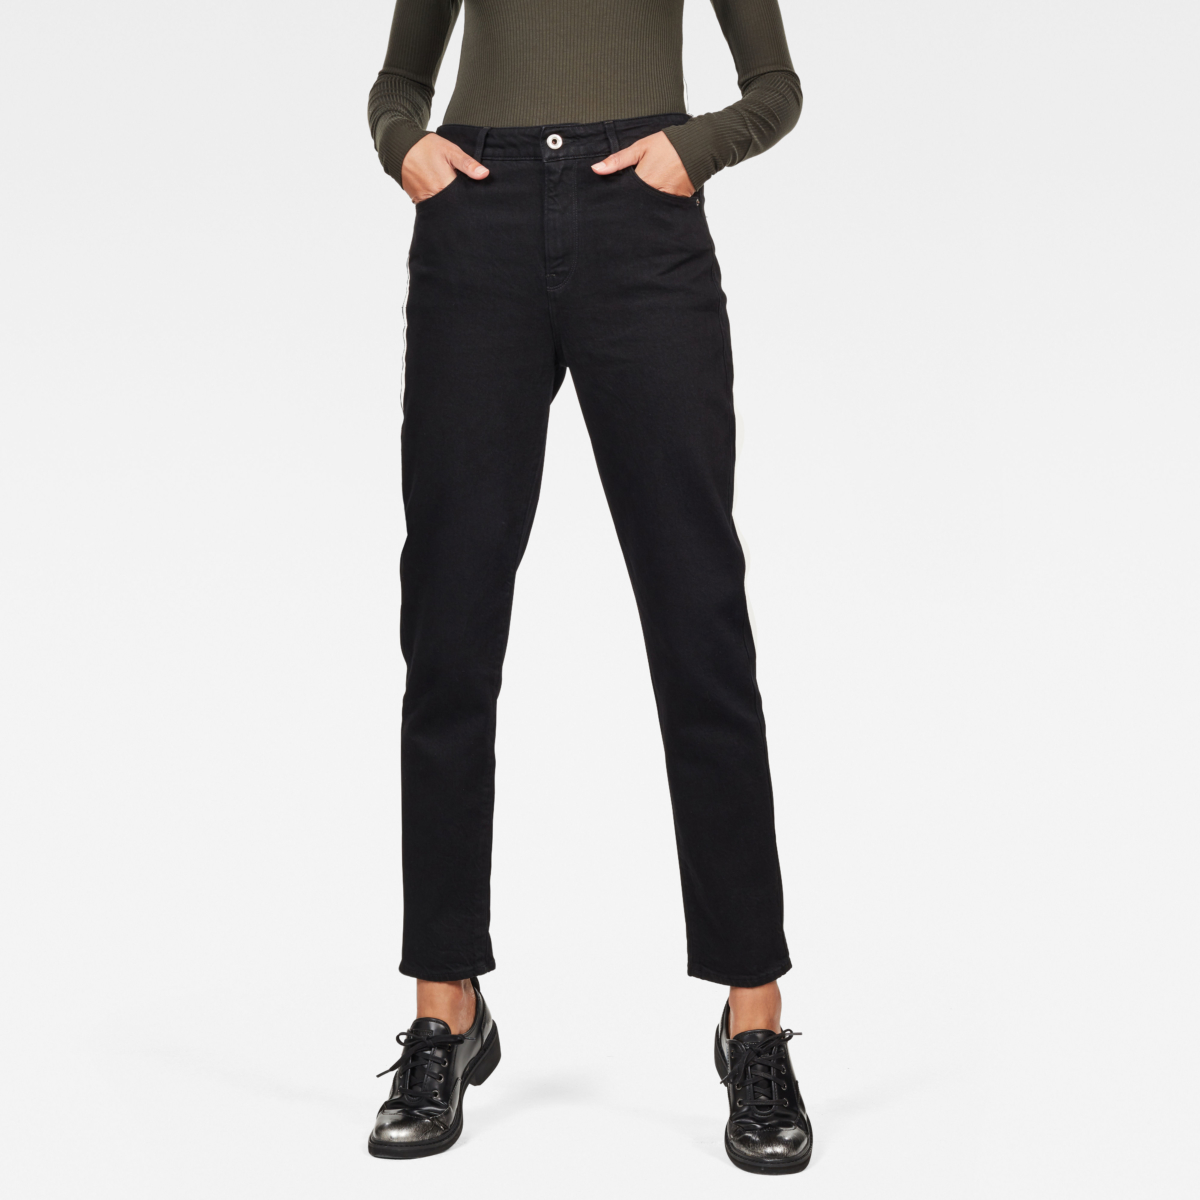 G-Star Jeans 3301 High Straight 90's Ankle Jeans Black Female Canada - GOOFASH - Womens JEANS